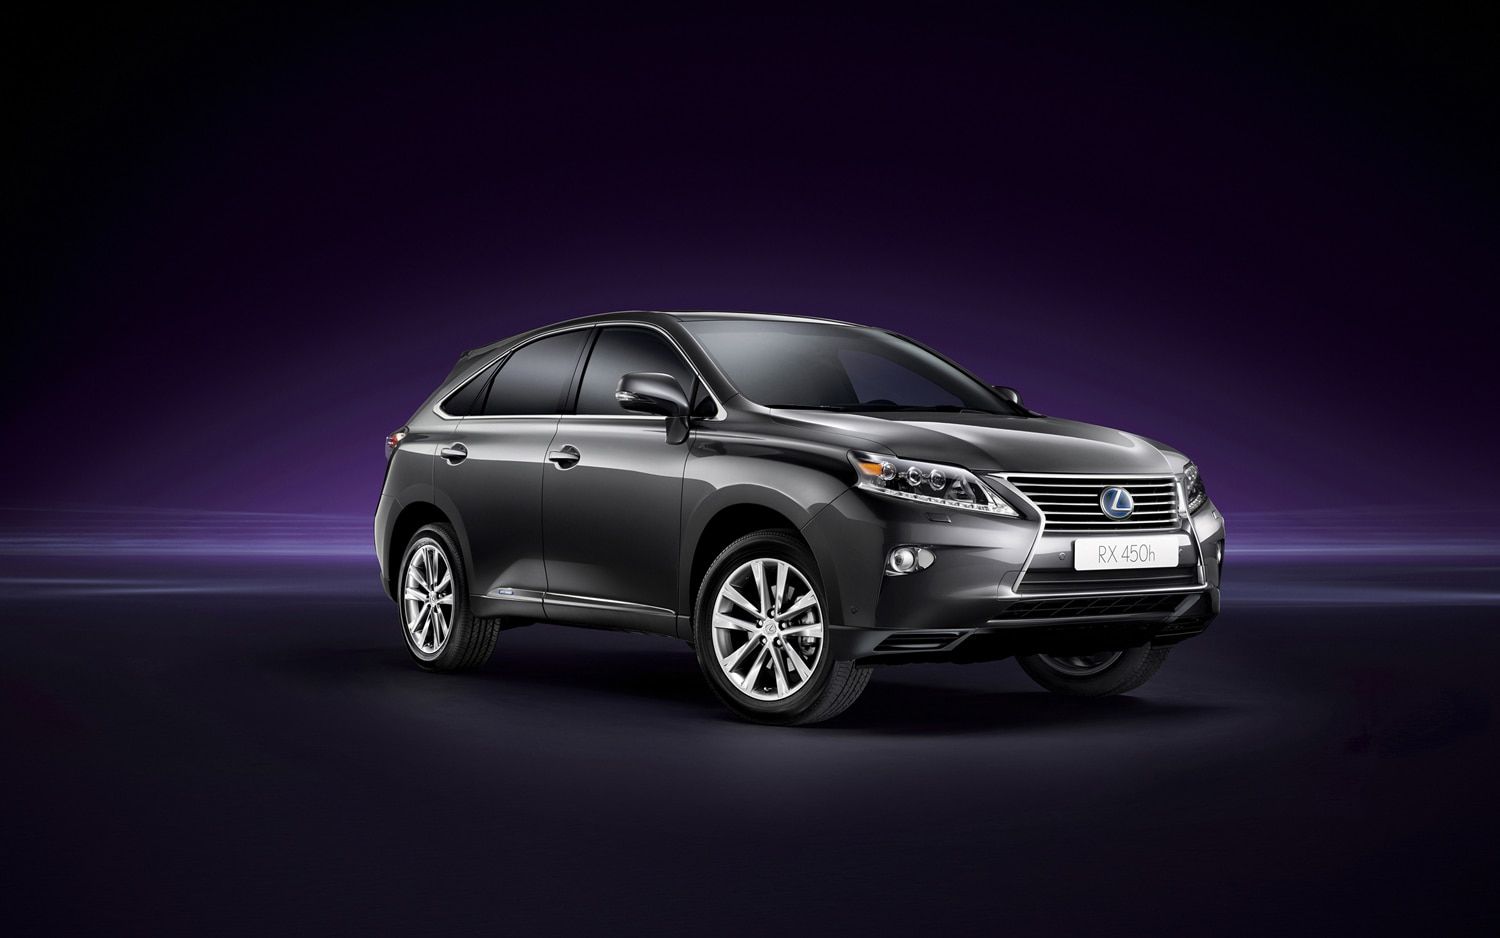 2013 Lexus RX450h Front Three Quarter1